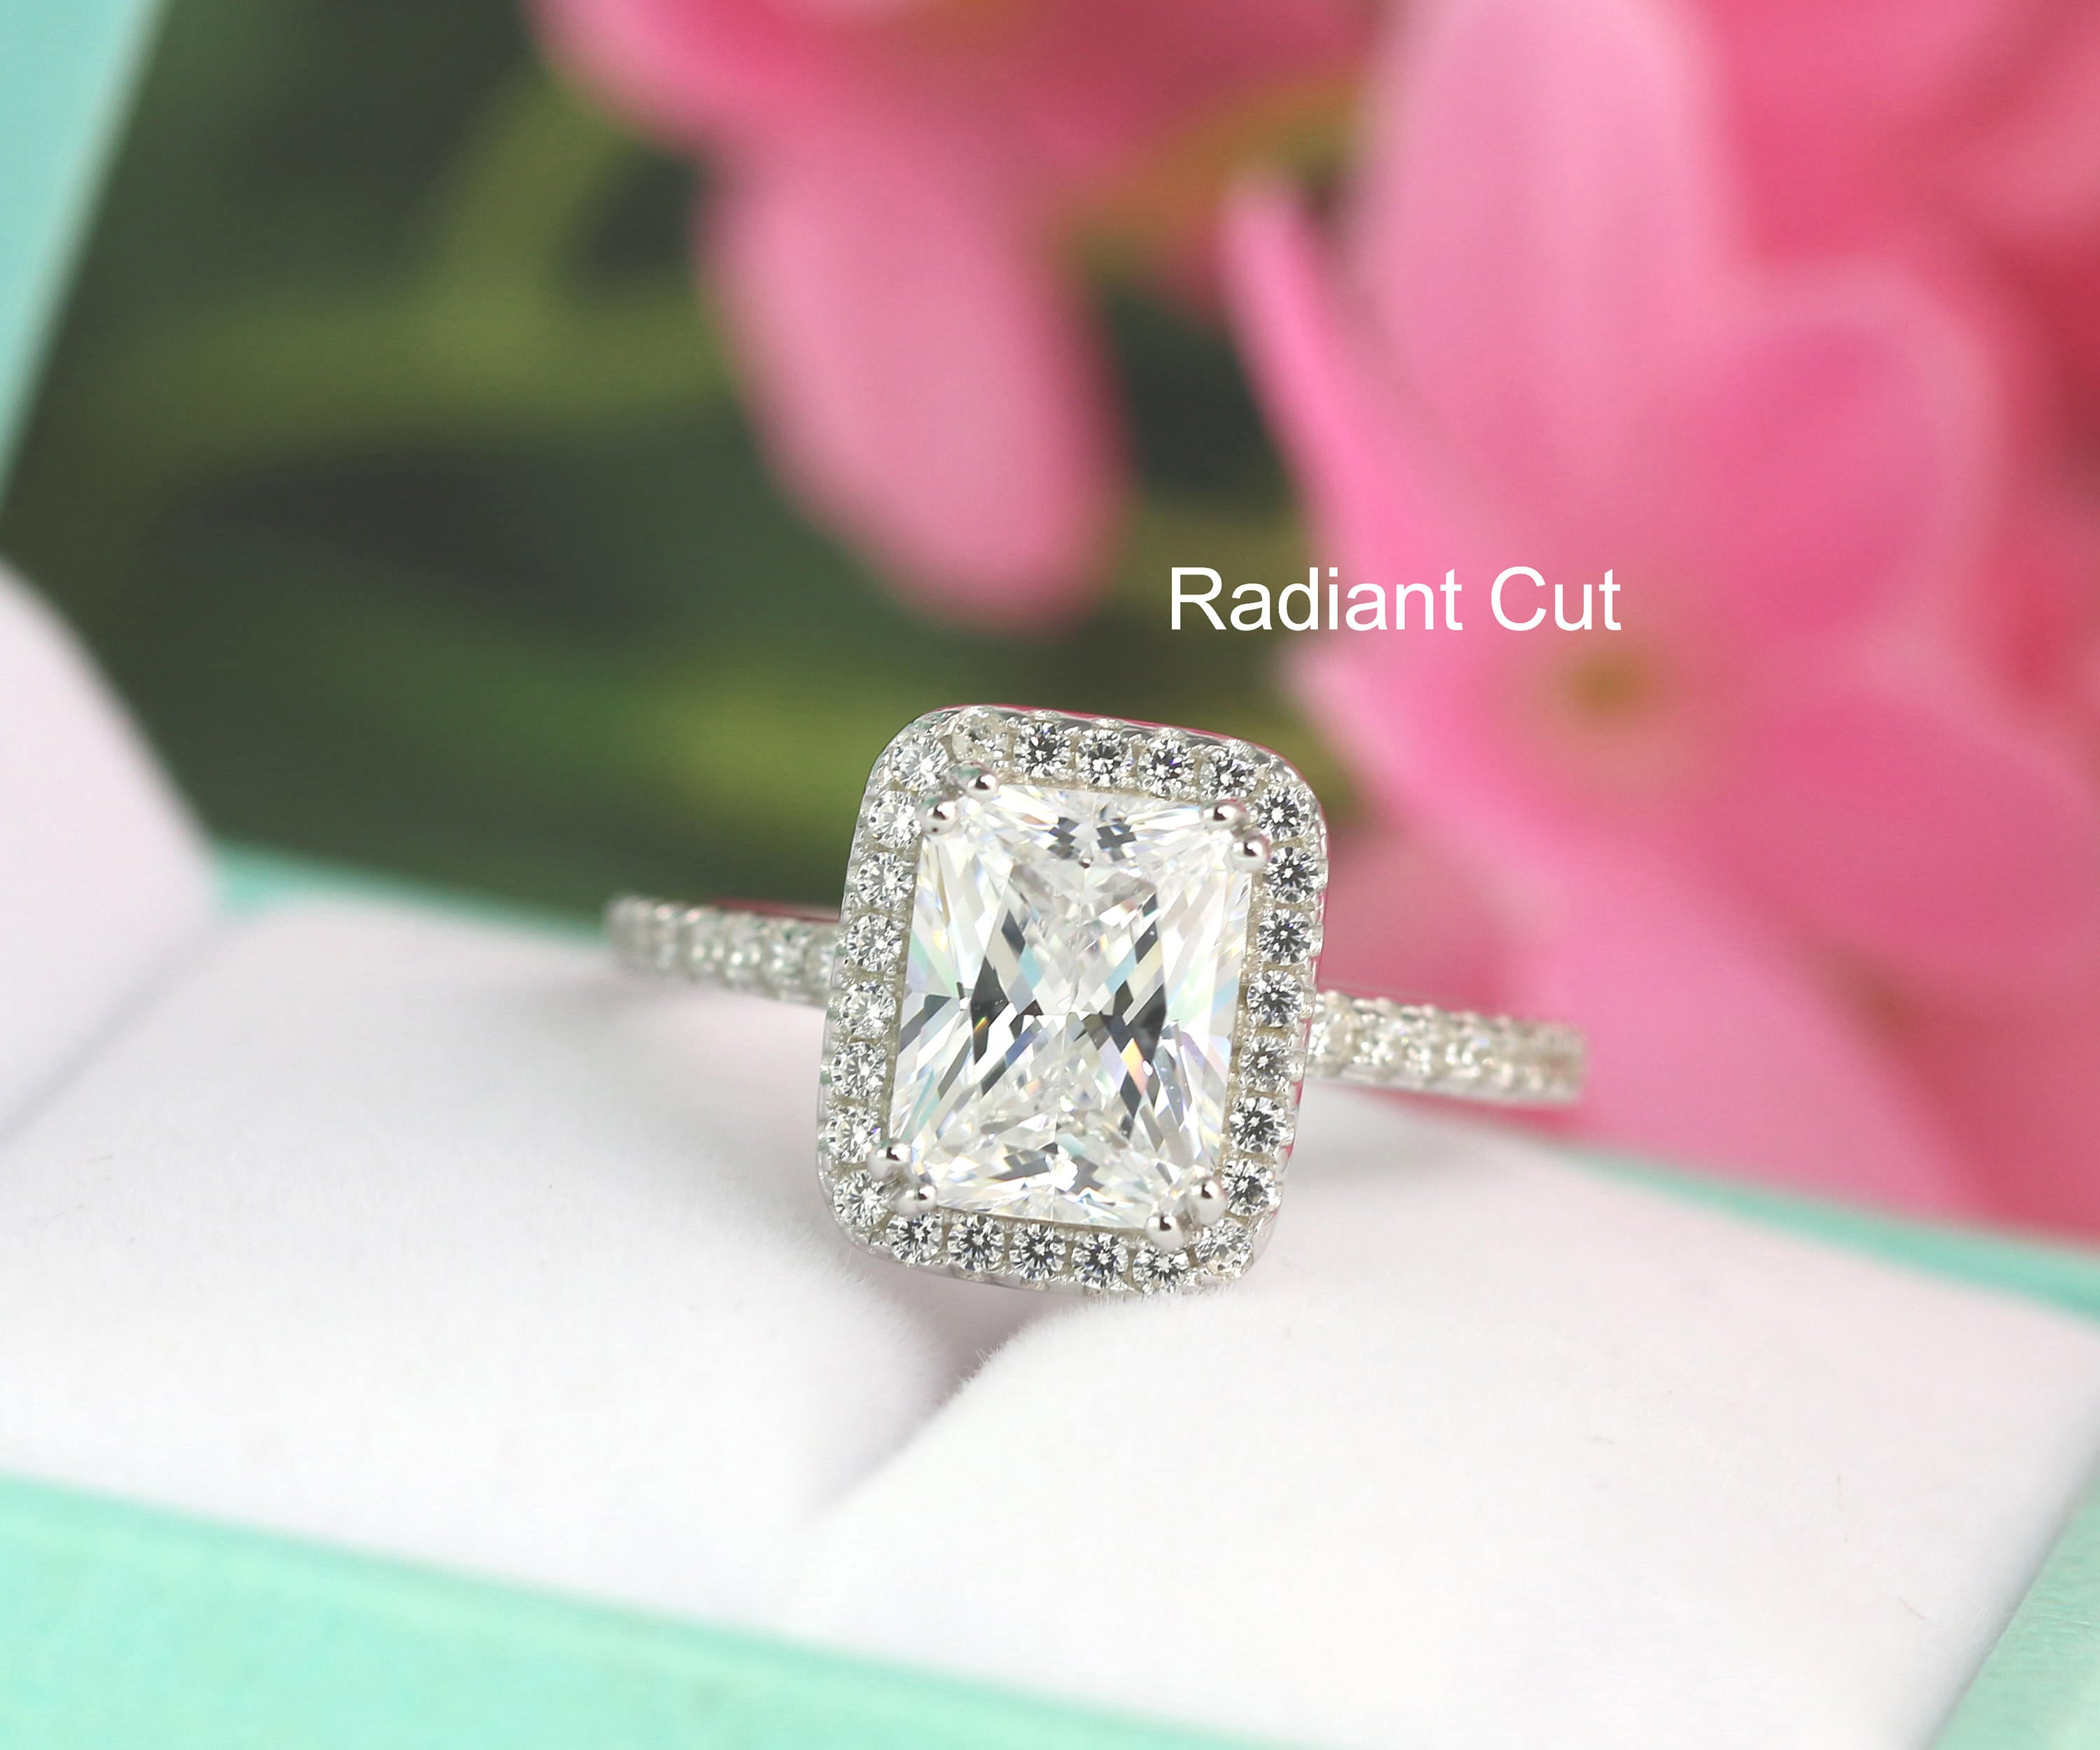 engagement dregnuy radiant diamond dublin diamonds rings in cut newest